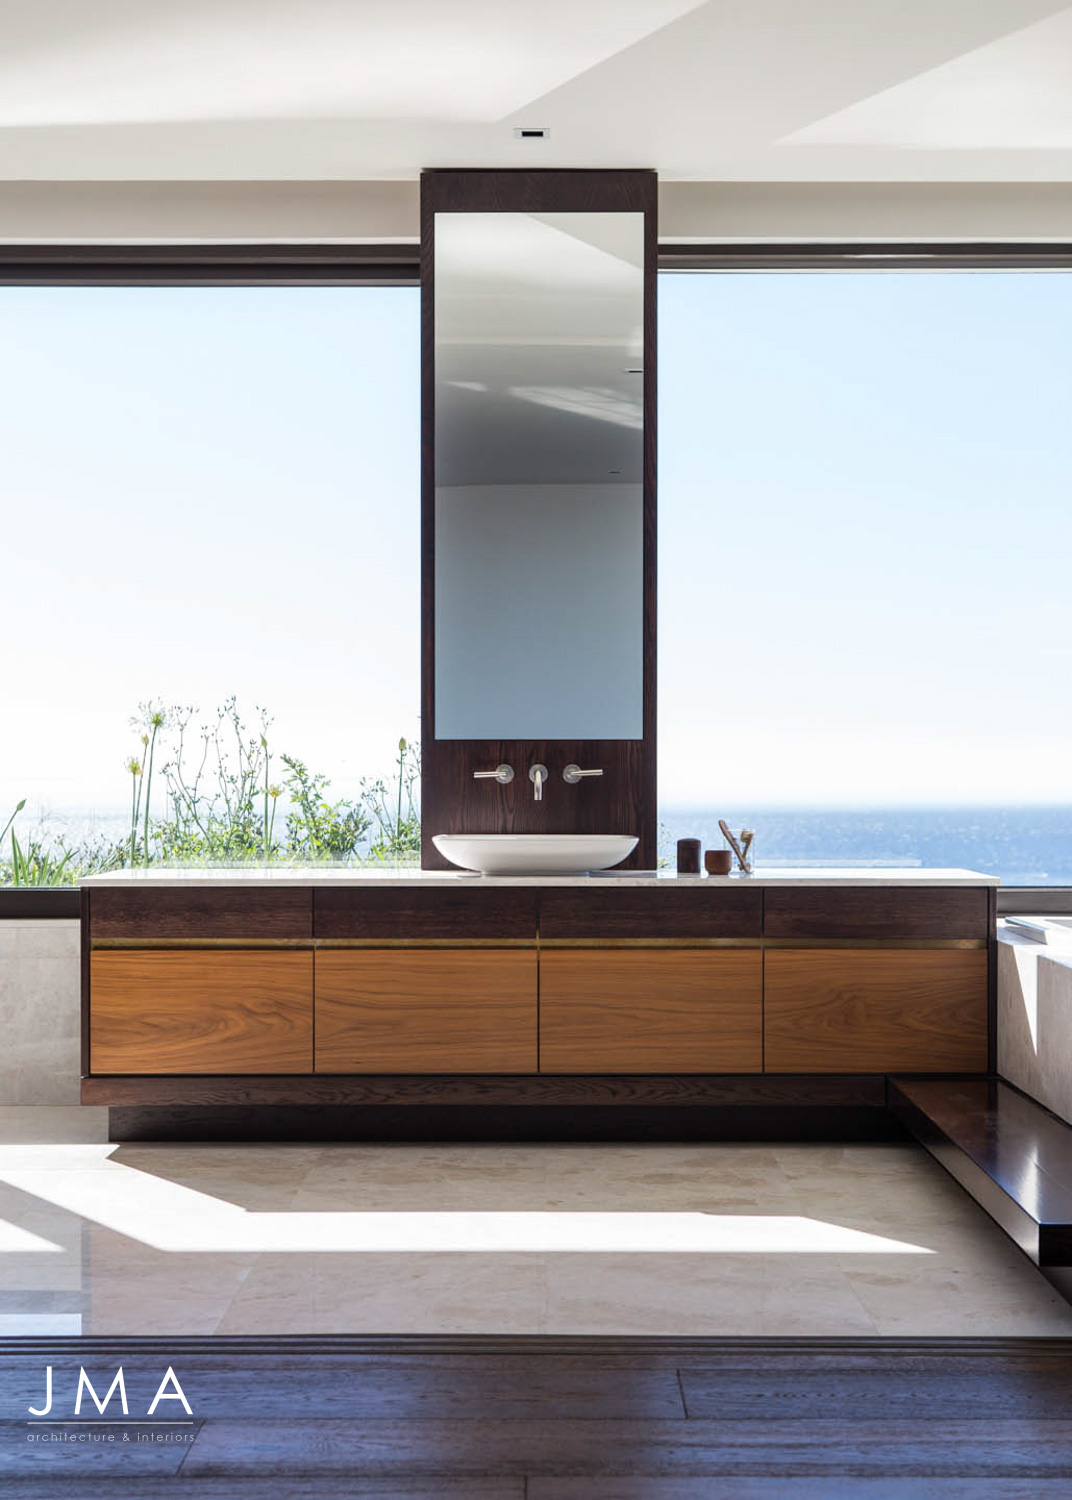 Avenue Fresnaye Villa - Bathroom with View of the Atlantic Seaboard